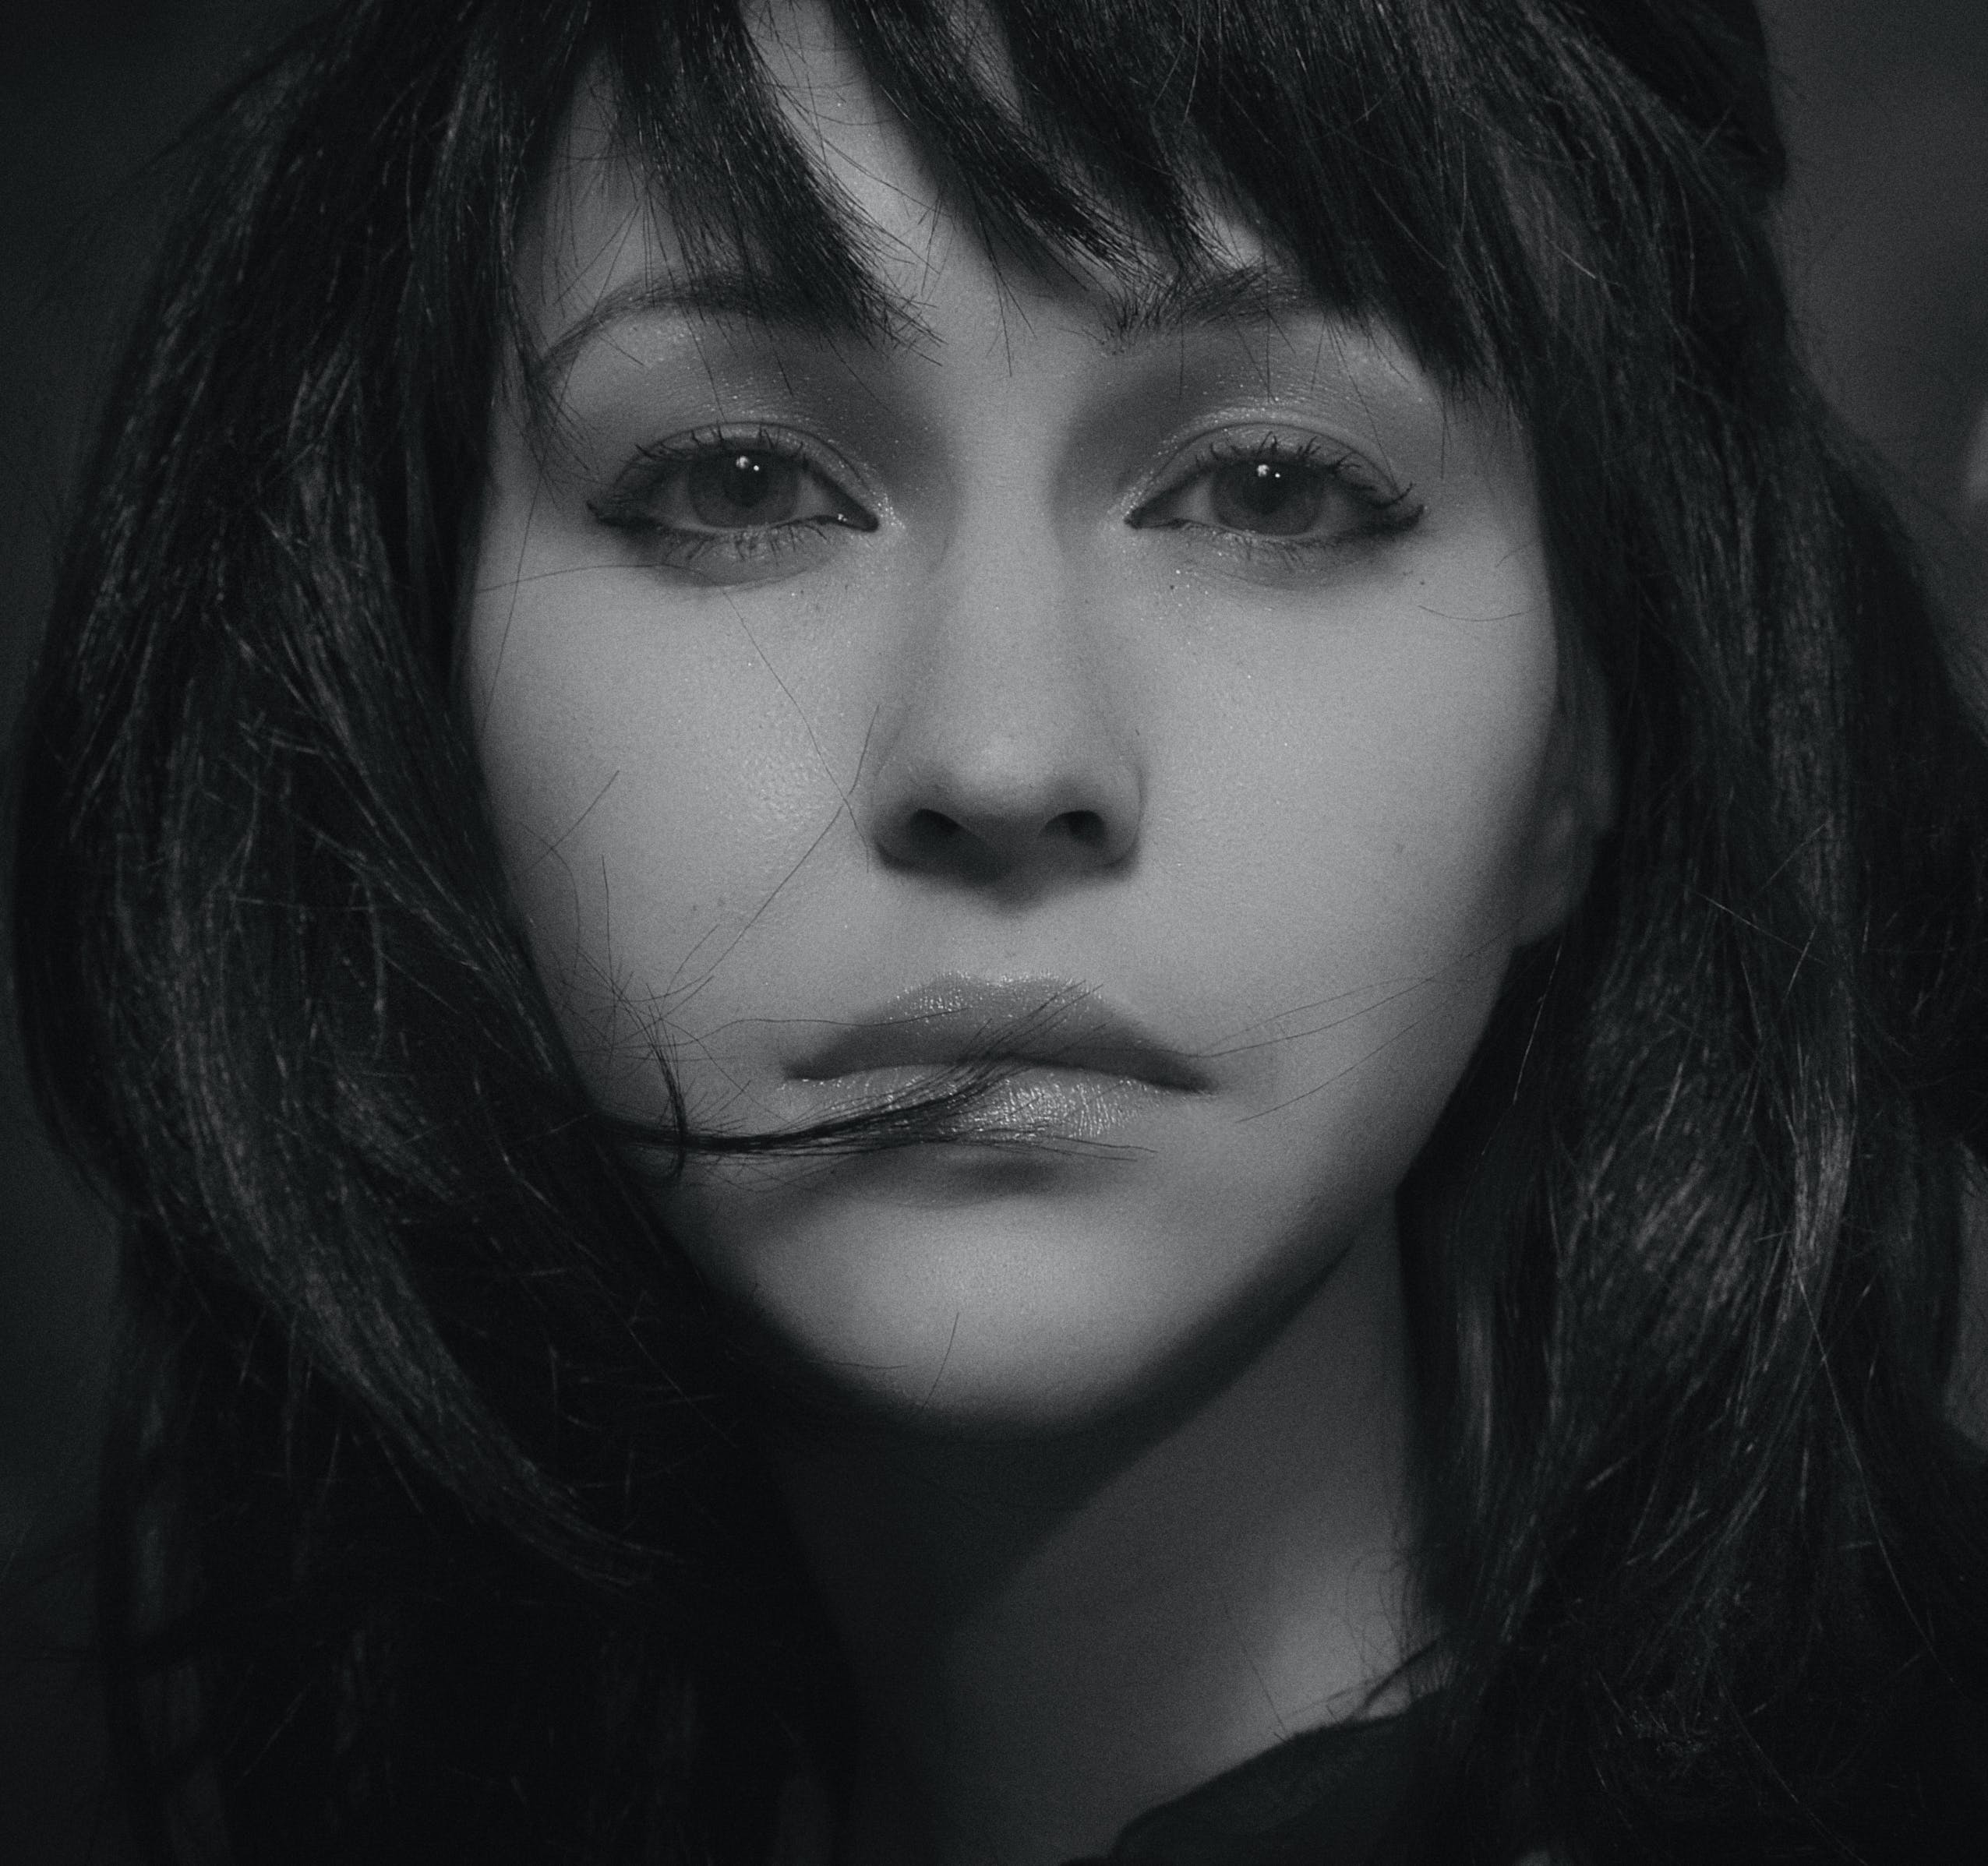 Woman With Bangs Portrait Photo